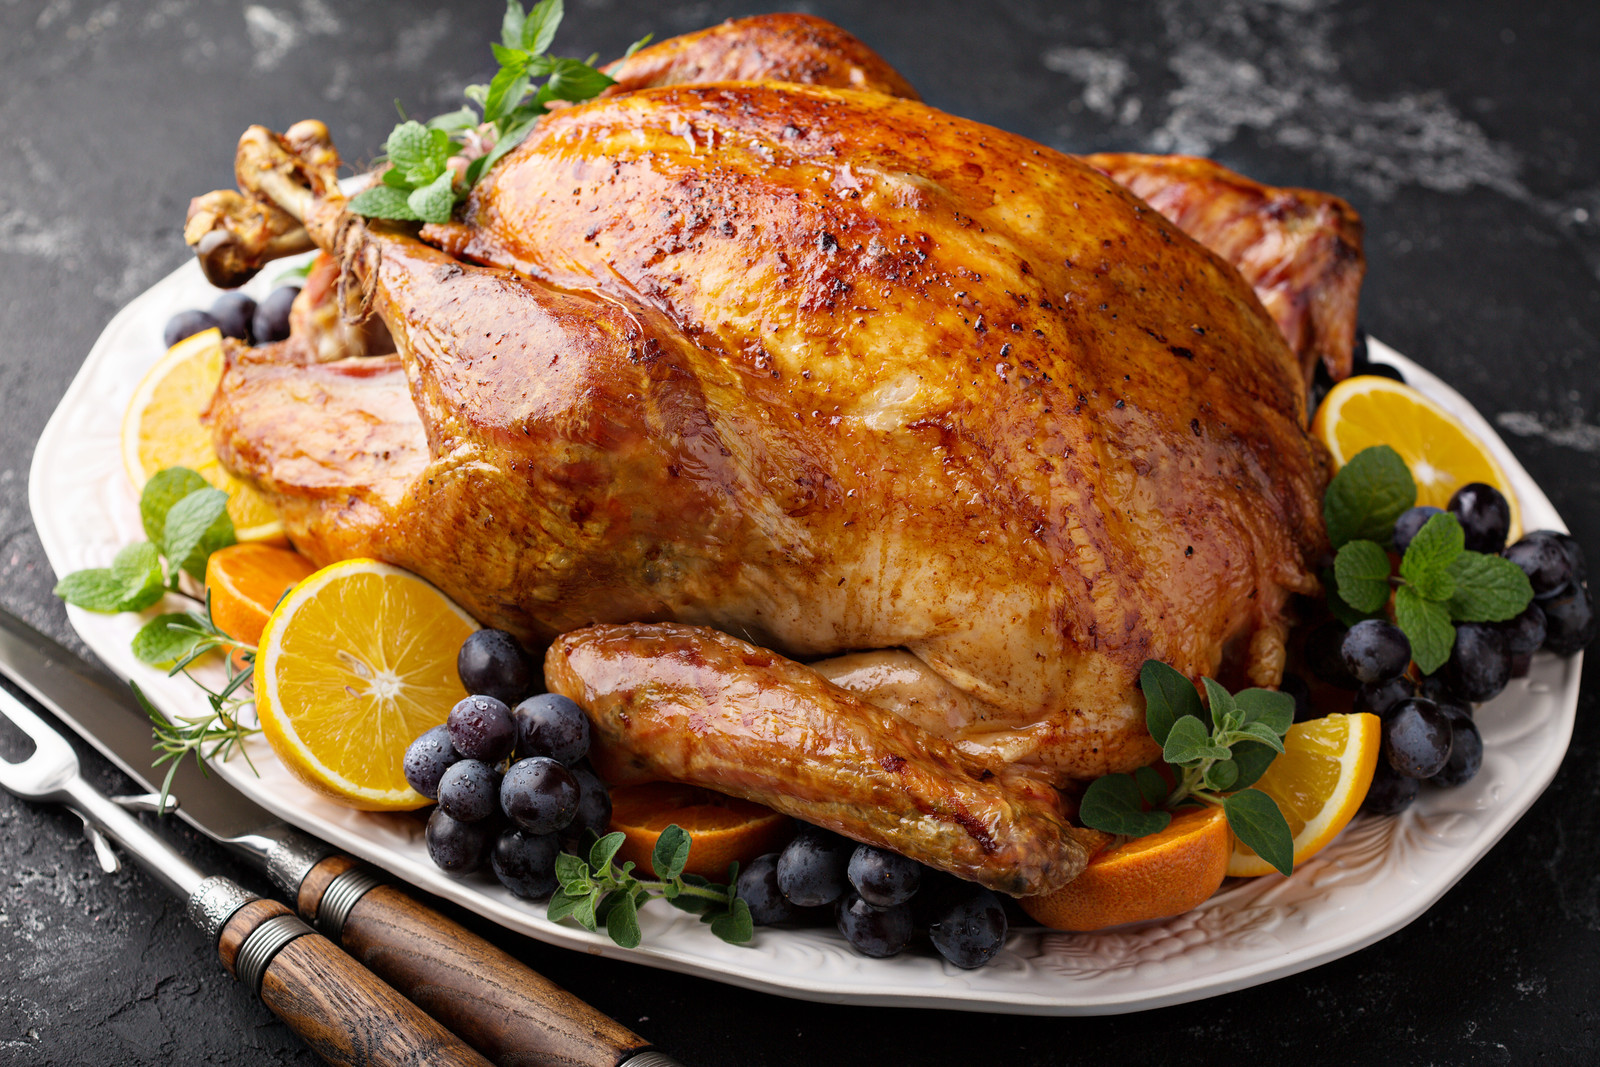 Whole roasted turkey on white platter garnaished with fresh oregano leaves, grapes, fresh mint sprigs and orange slices sitting on a marble table witha  serving knife and fork resting on the side